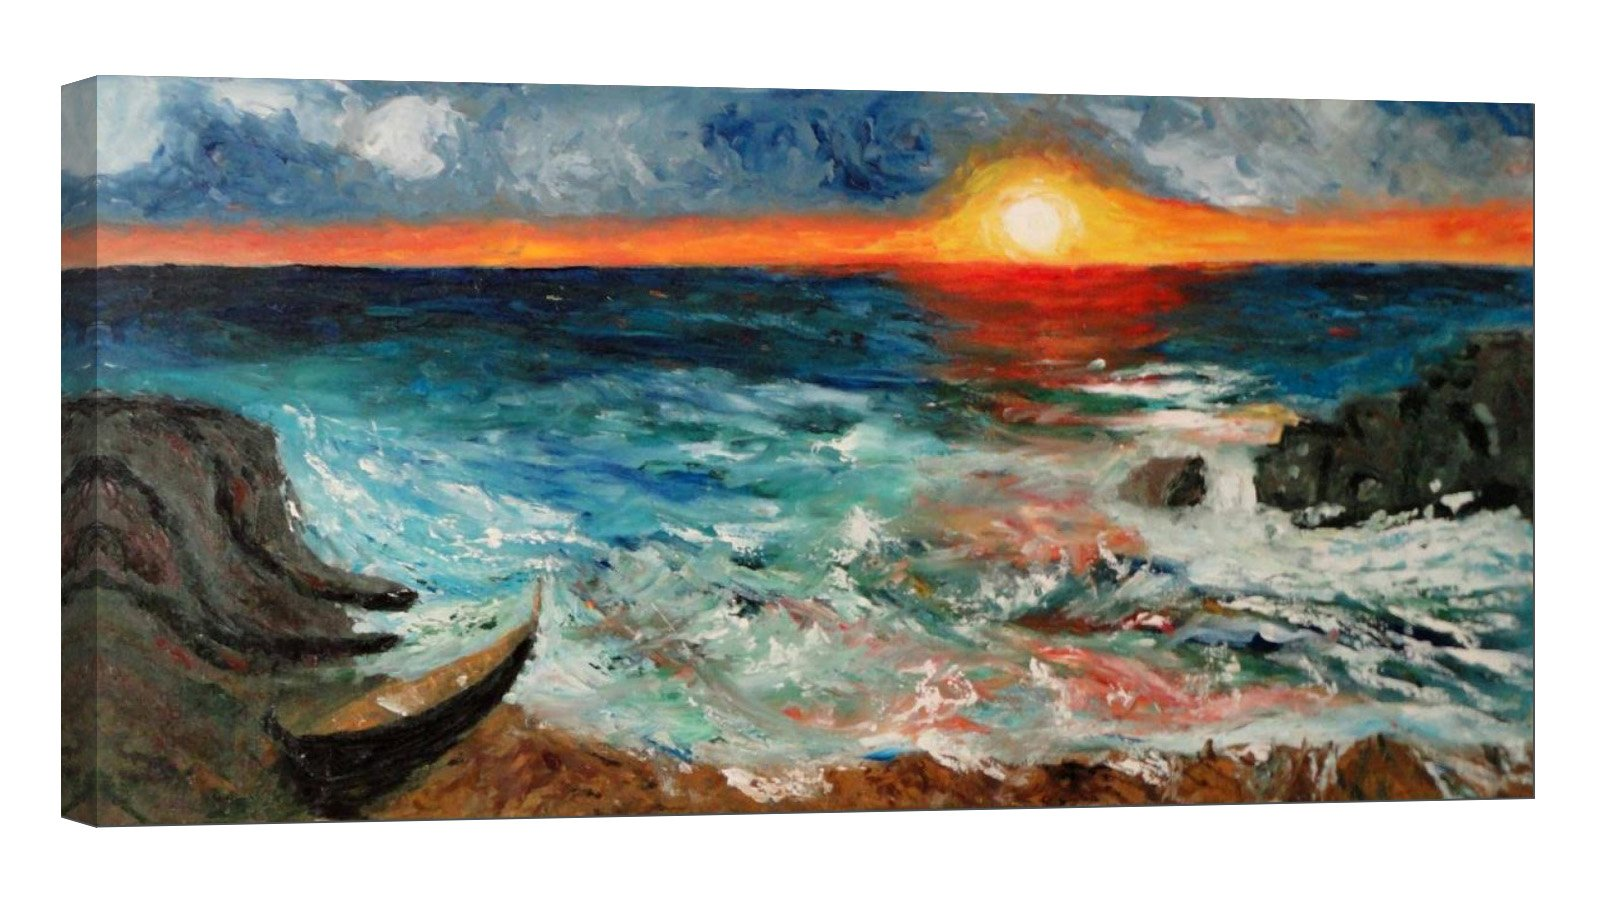 Glow in The Dark Canvas Painting - Stretched and Framed Giclee Wall Art Print - Like Oil Painting Sunset On The Beach - Master Bedroom Living Room Decor - 46 x 24 inch